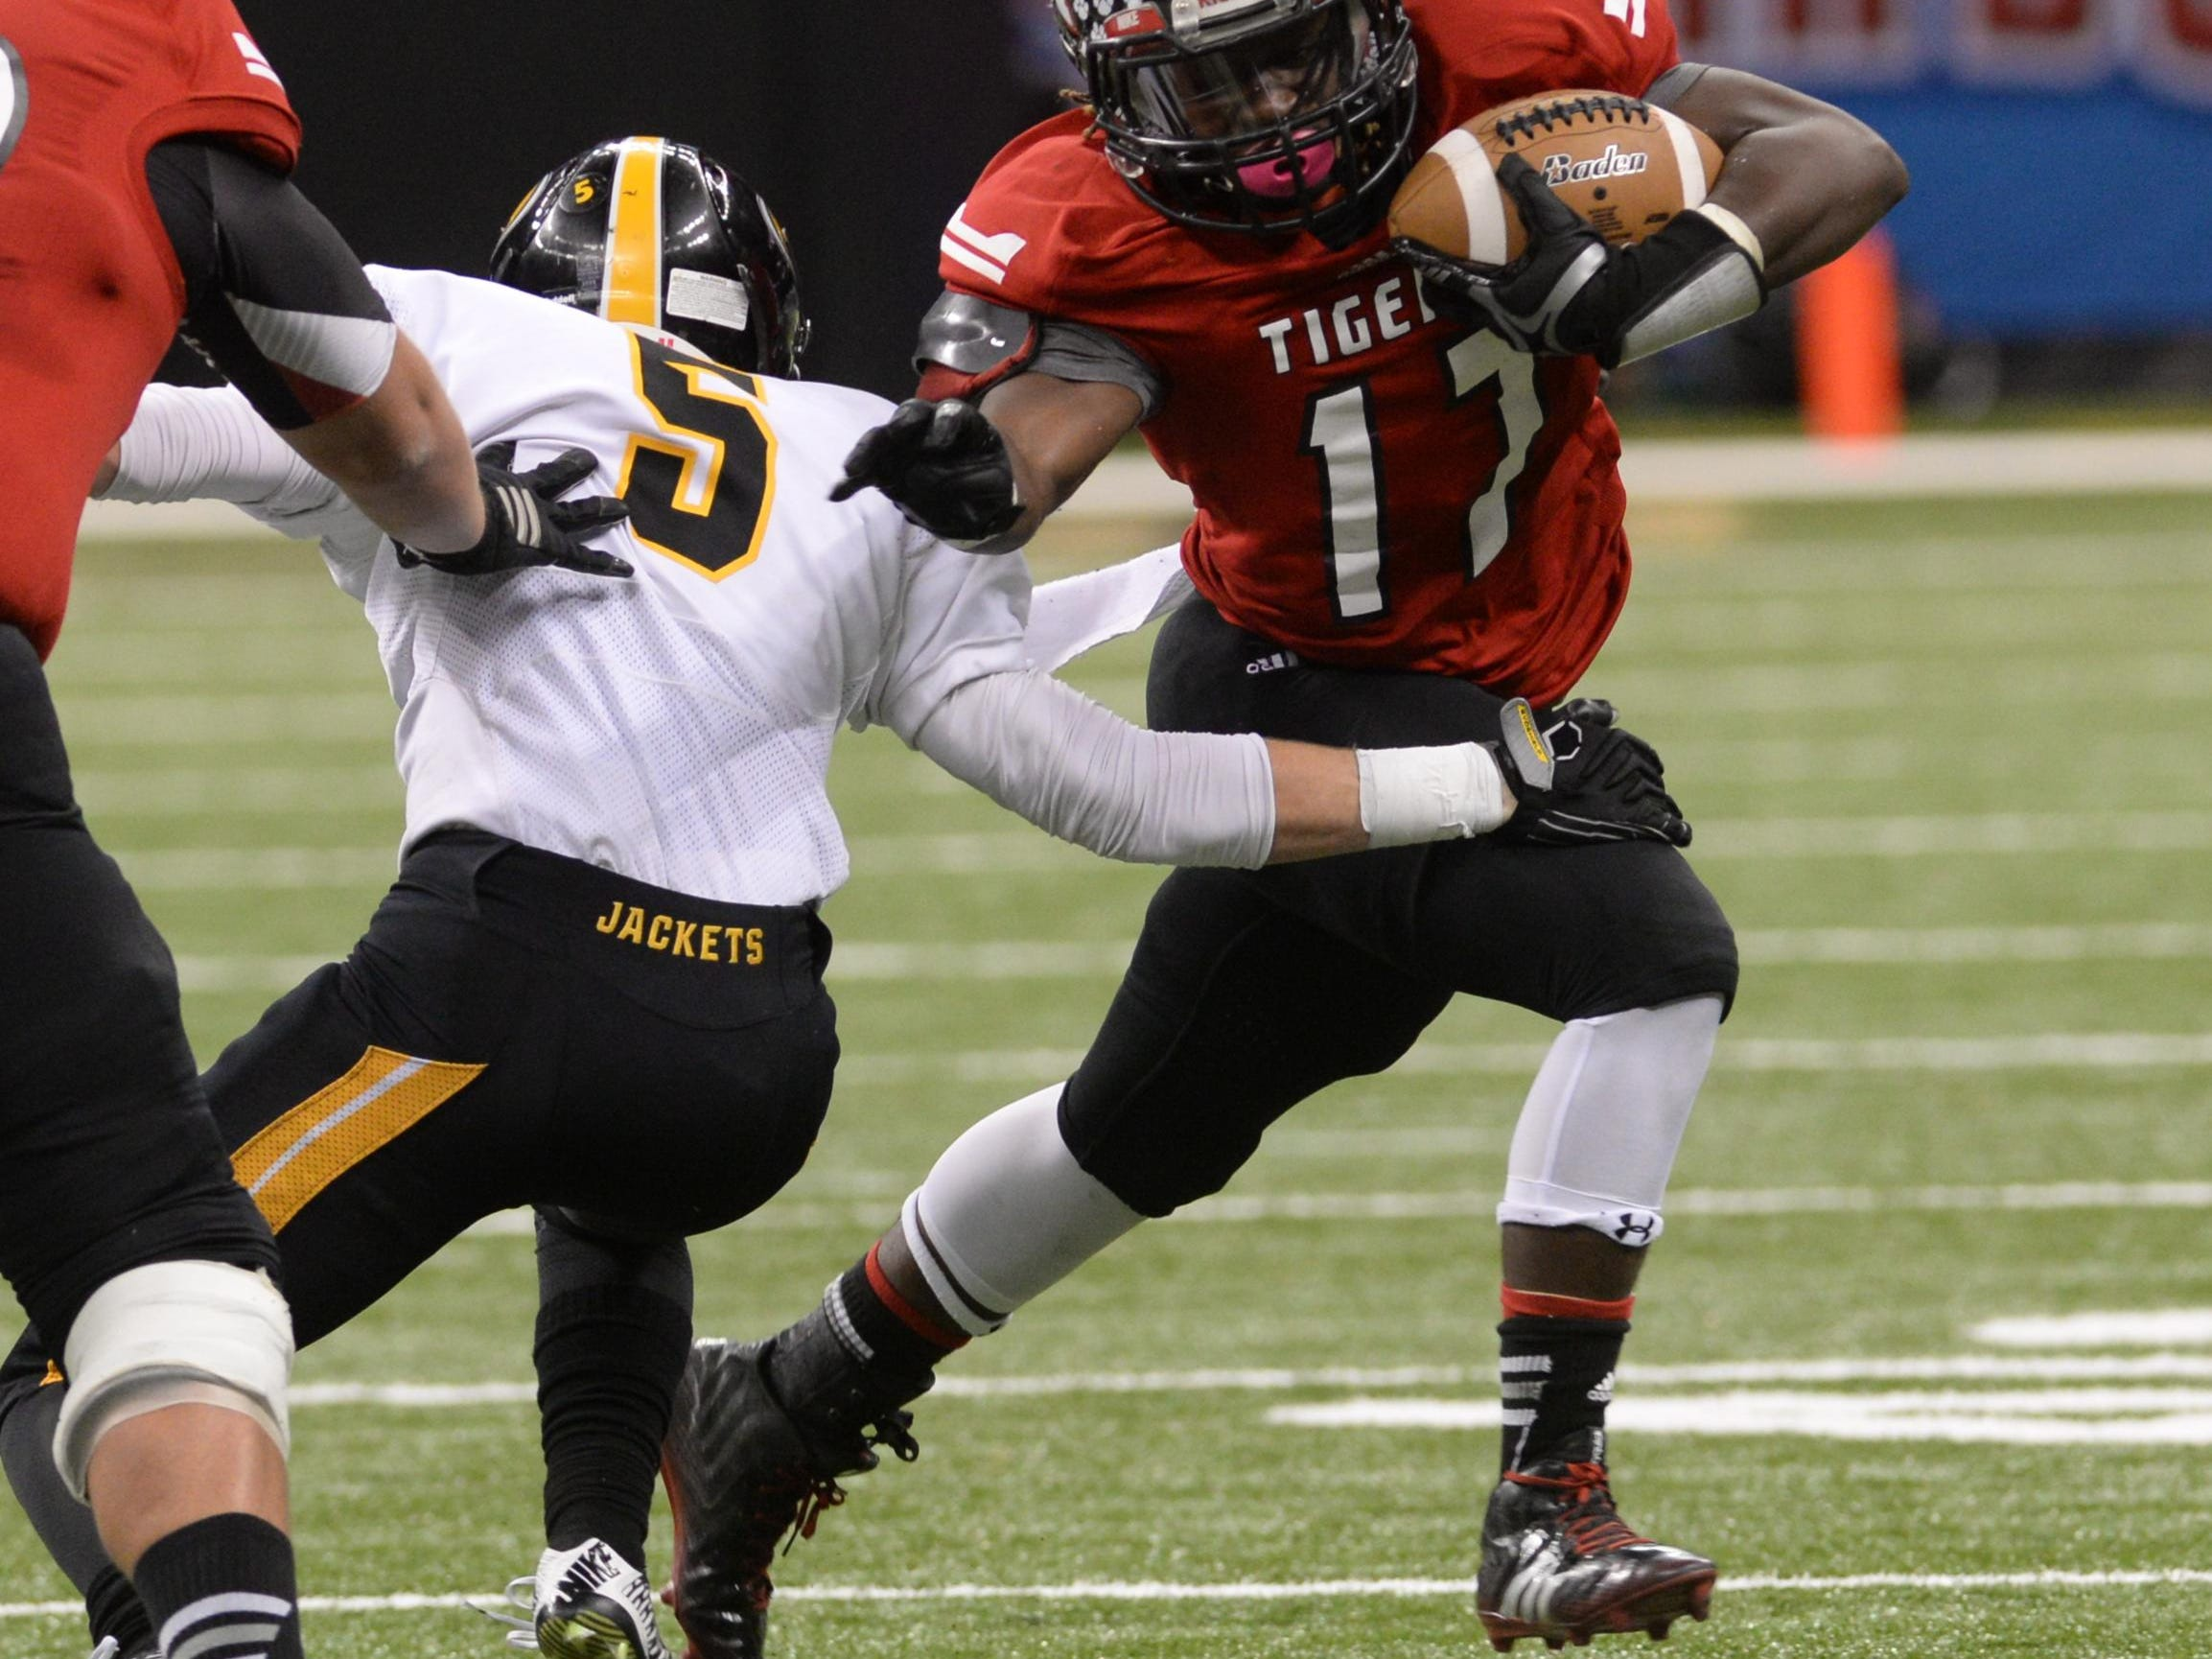 Many's Kentrell Maxie runs for a first down in the second quarter of the 2014 LHSAA Class 2A championship game with Kinder in the Mercedes-Benz Superdome. Maxie is one of two 1,200-yard rushers returning for the Tigers.